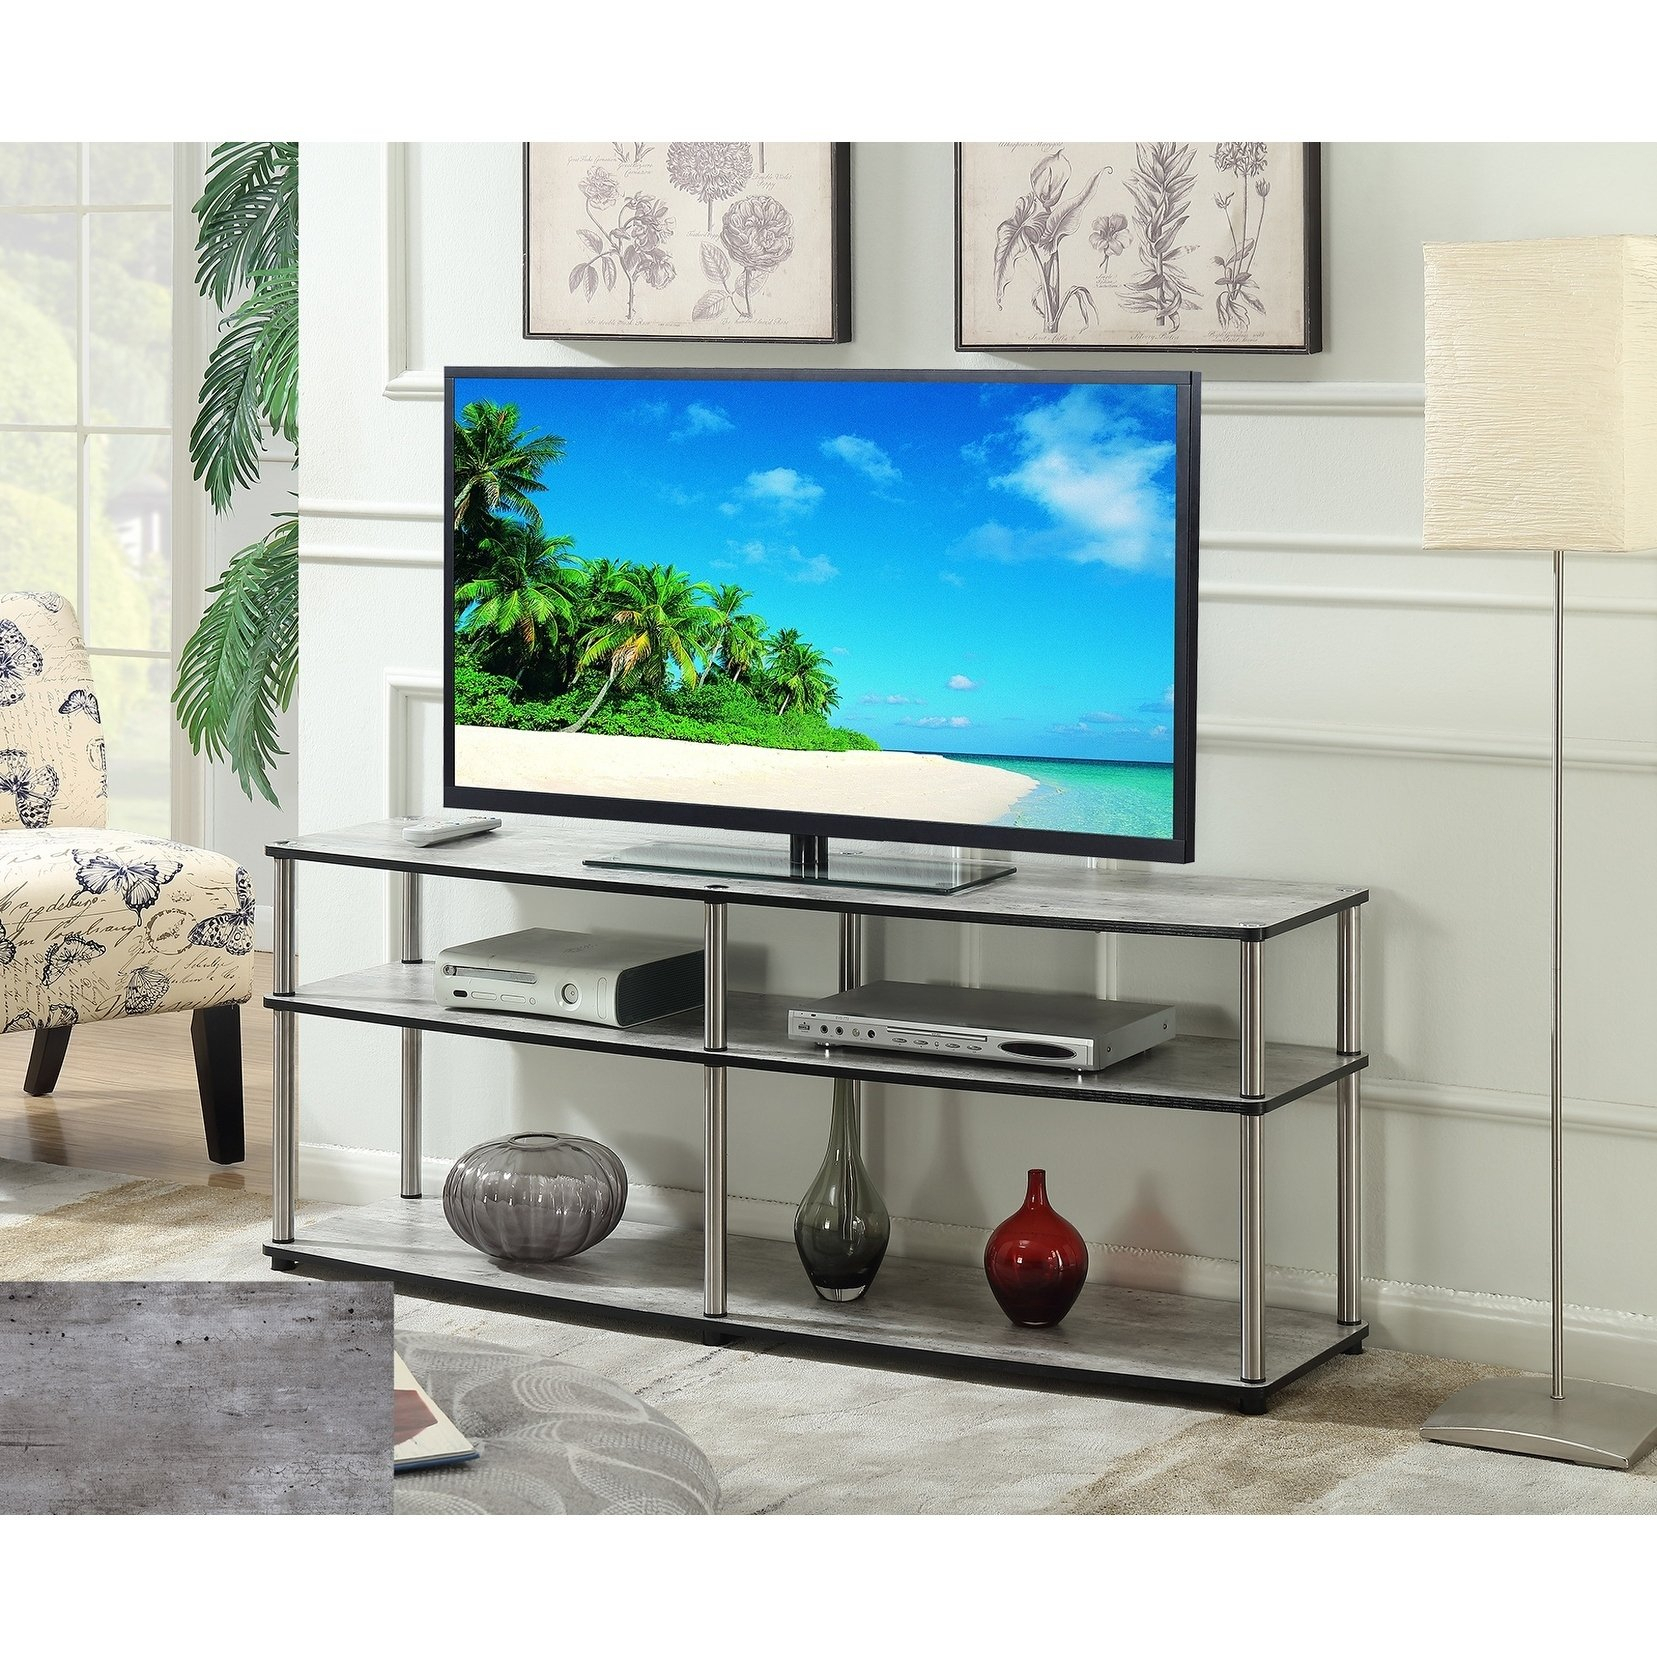 3 Tv Stands & Entertainment Centers For Less | Overstock With Rowan 45 Inch Tv Stands (View 13 of 30)